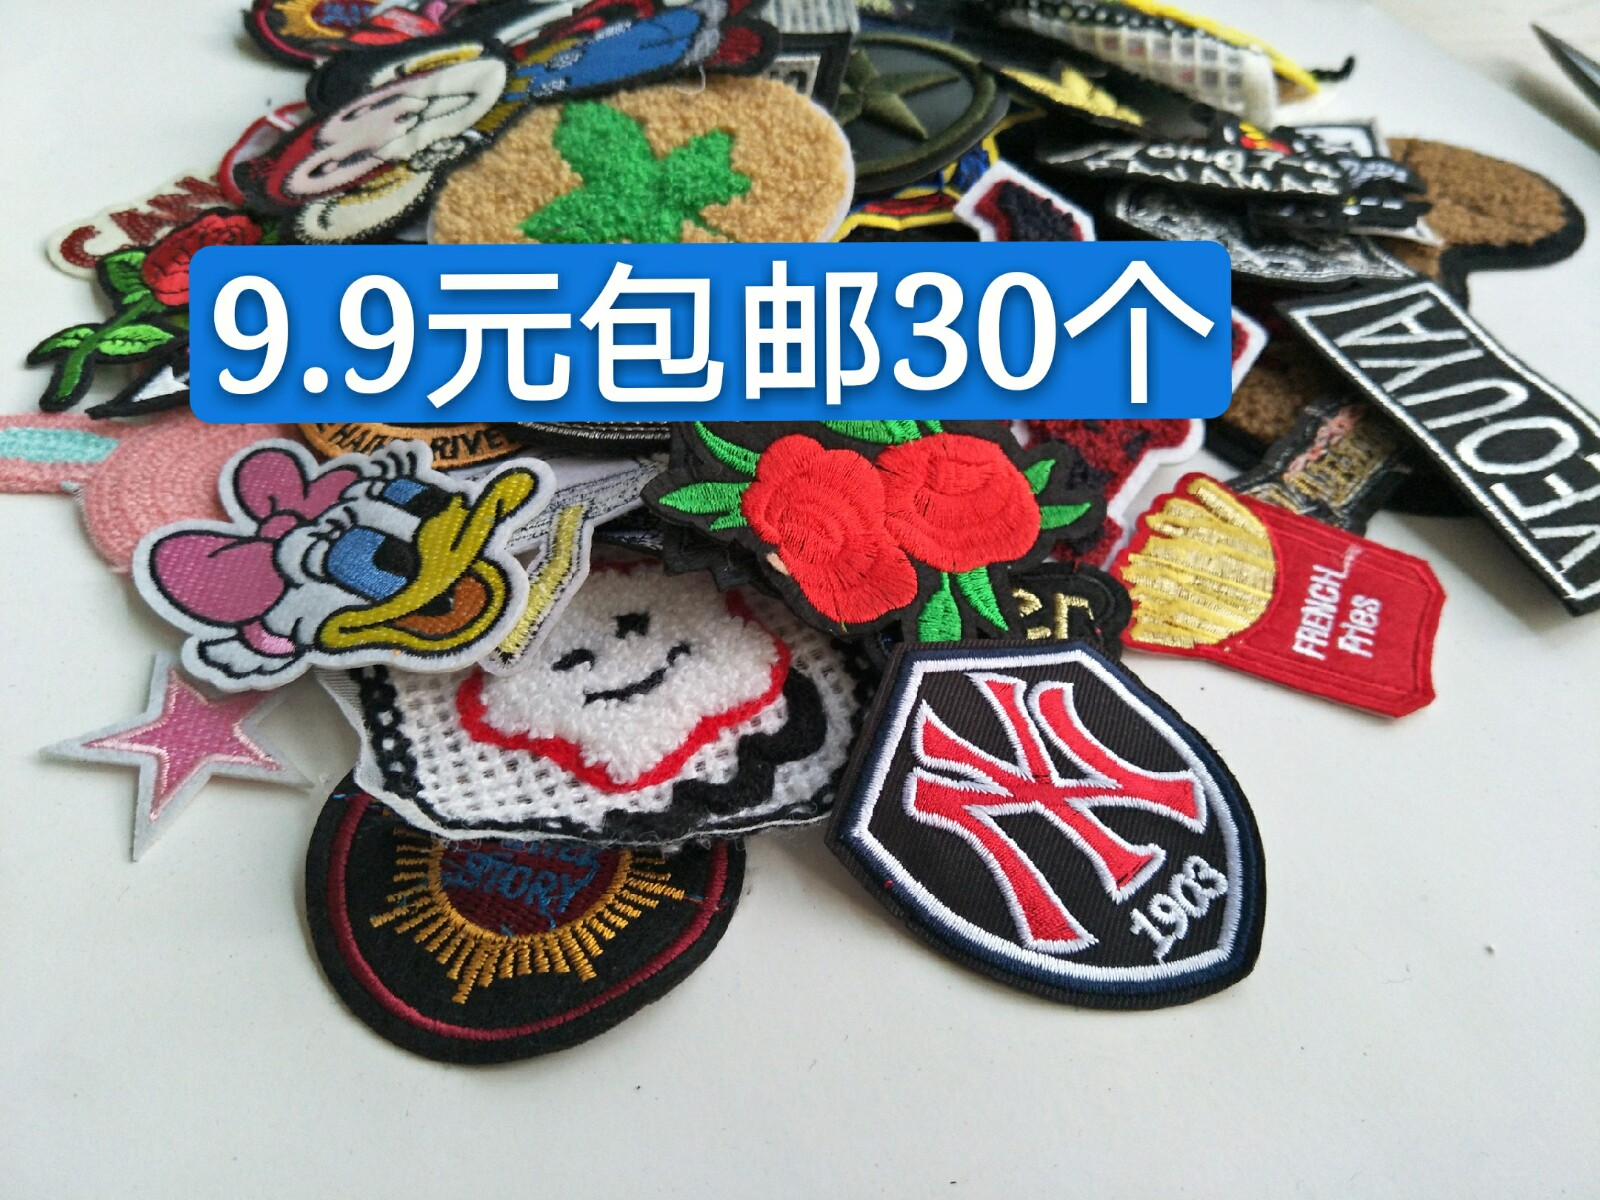 Free post: 30 pieces of random cloth with holes, patches, jeans, decorative stickers, non self adhesive